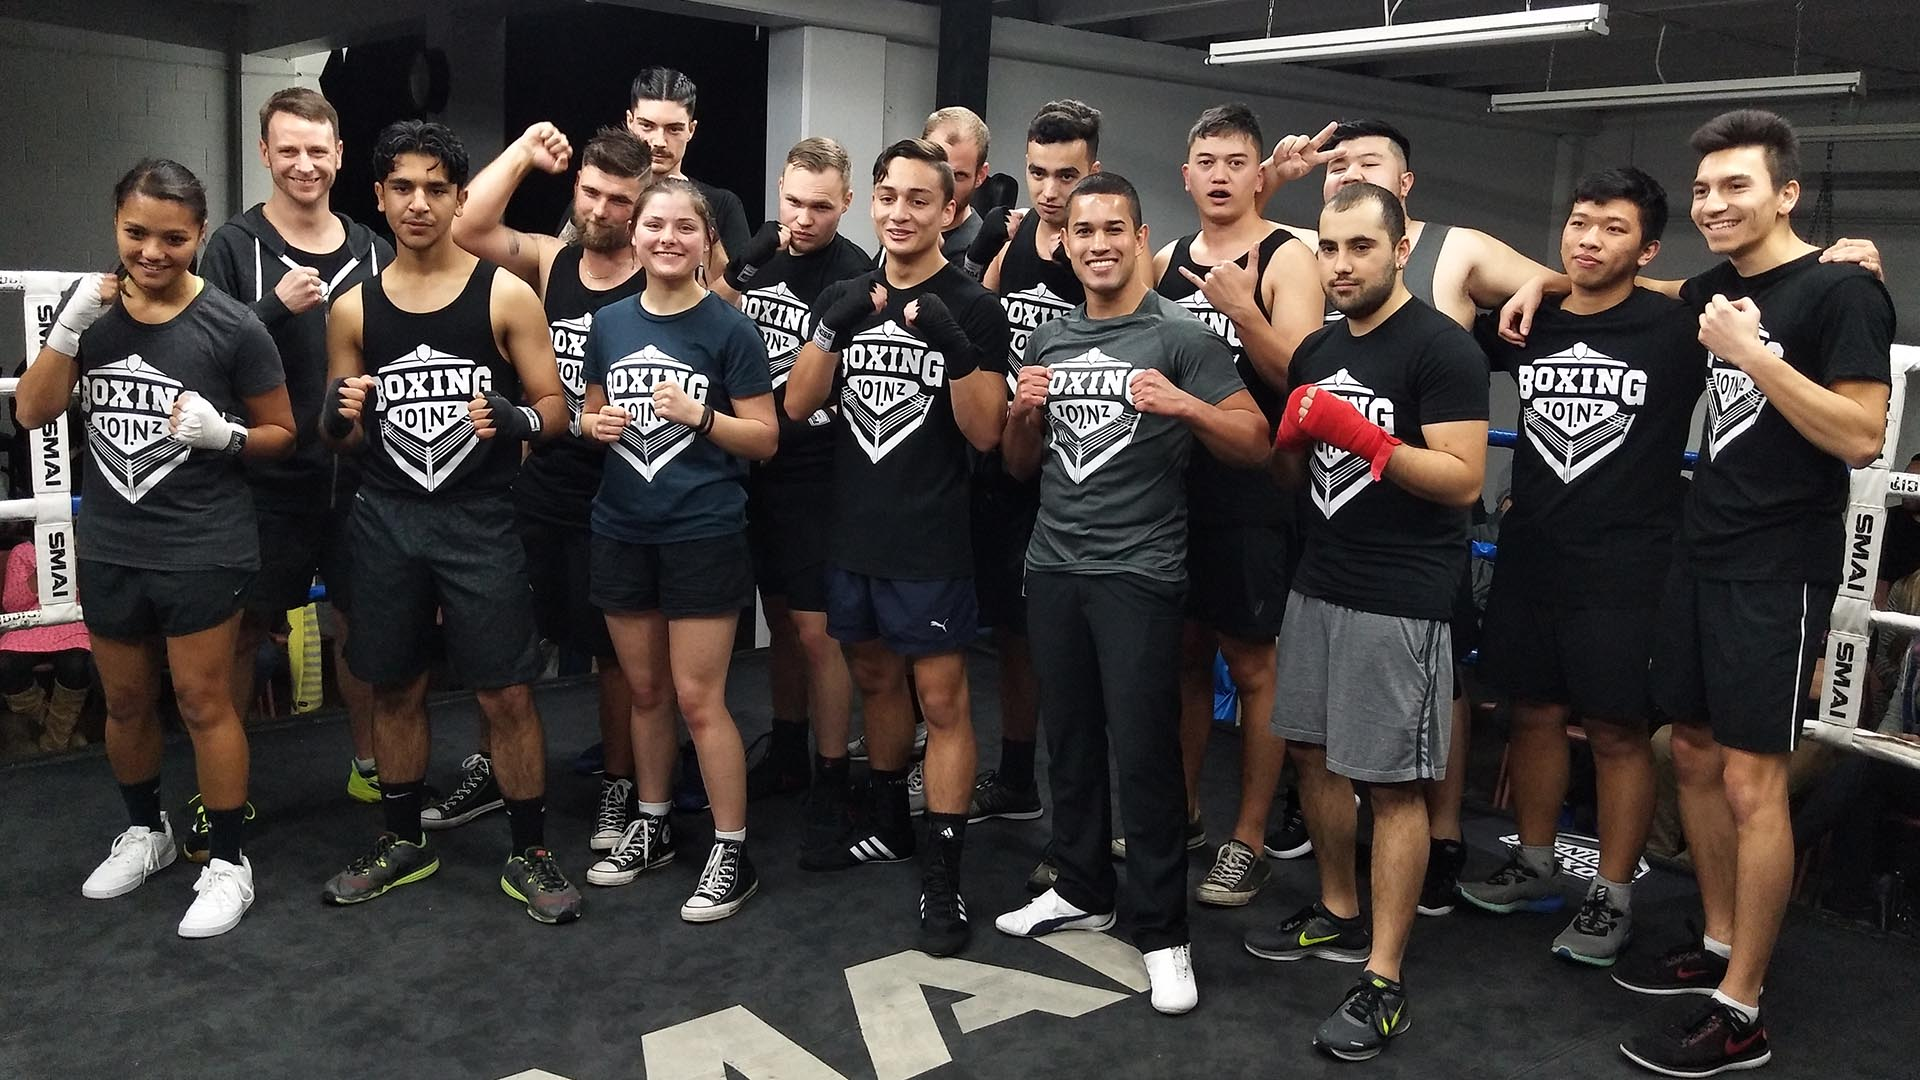 boxing 101 new zealand fight team